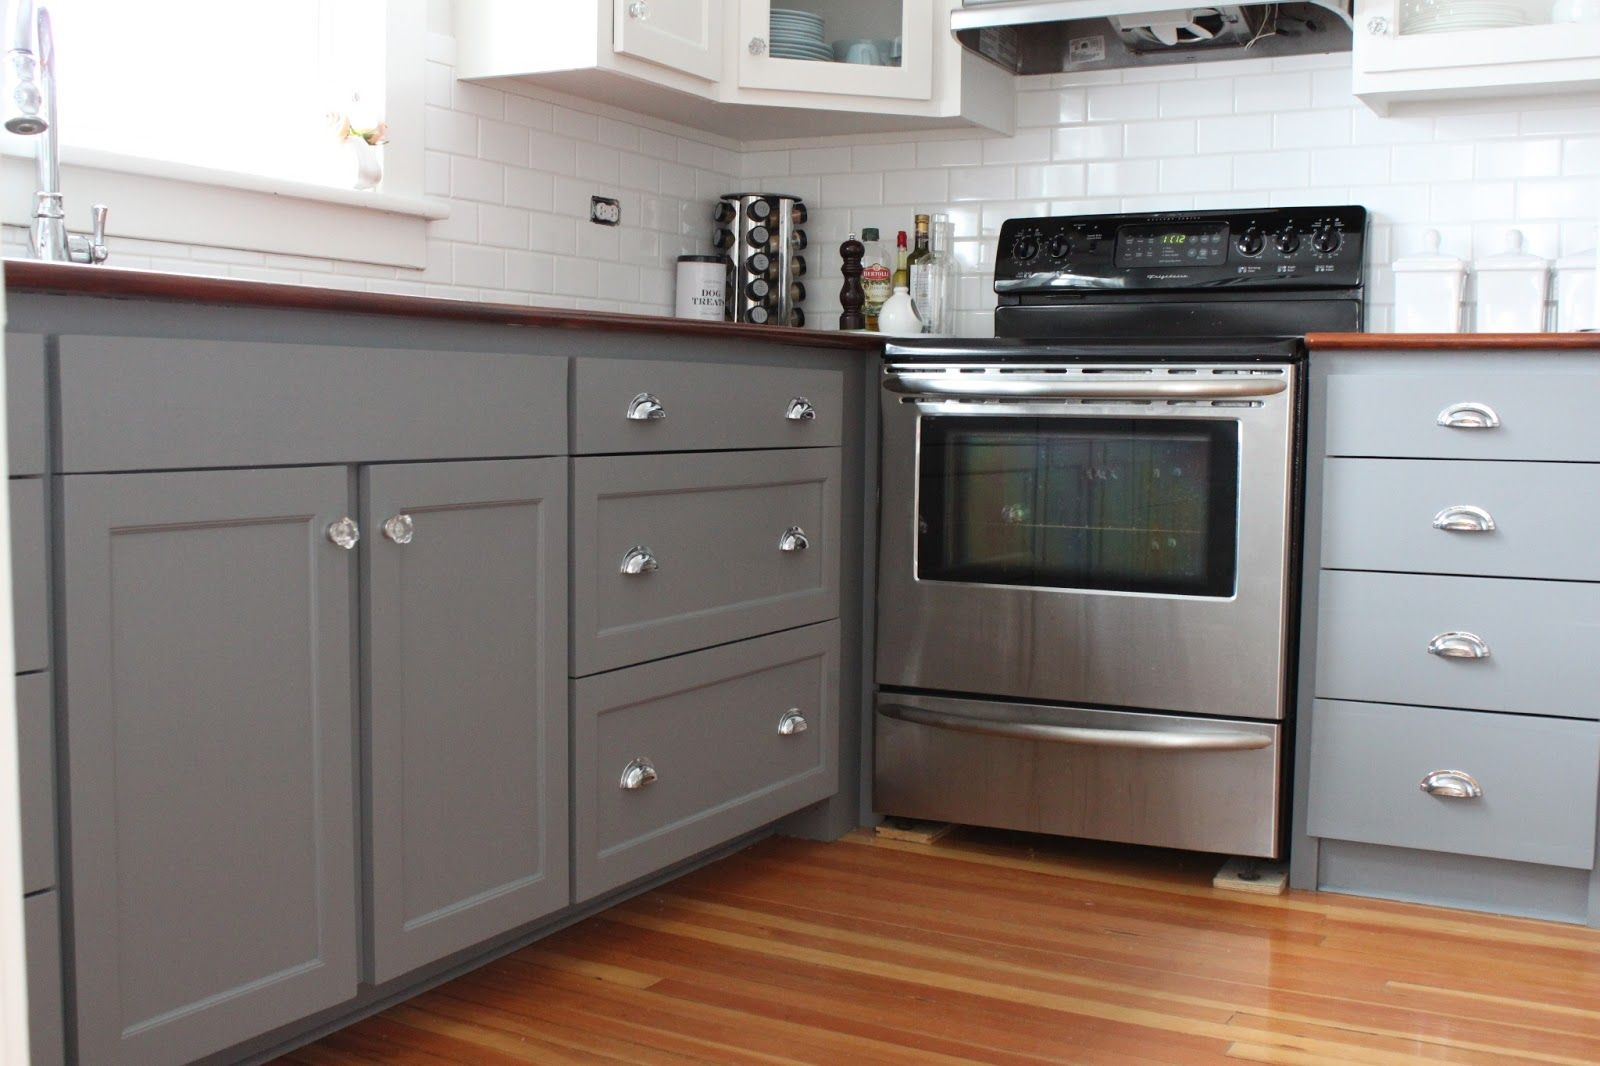 Beautify Your Kitchen With Some Colorful Painted Kitchen Cabinets - Painting wood cabinets grey